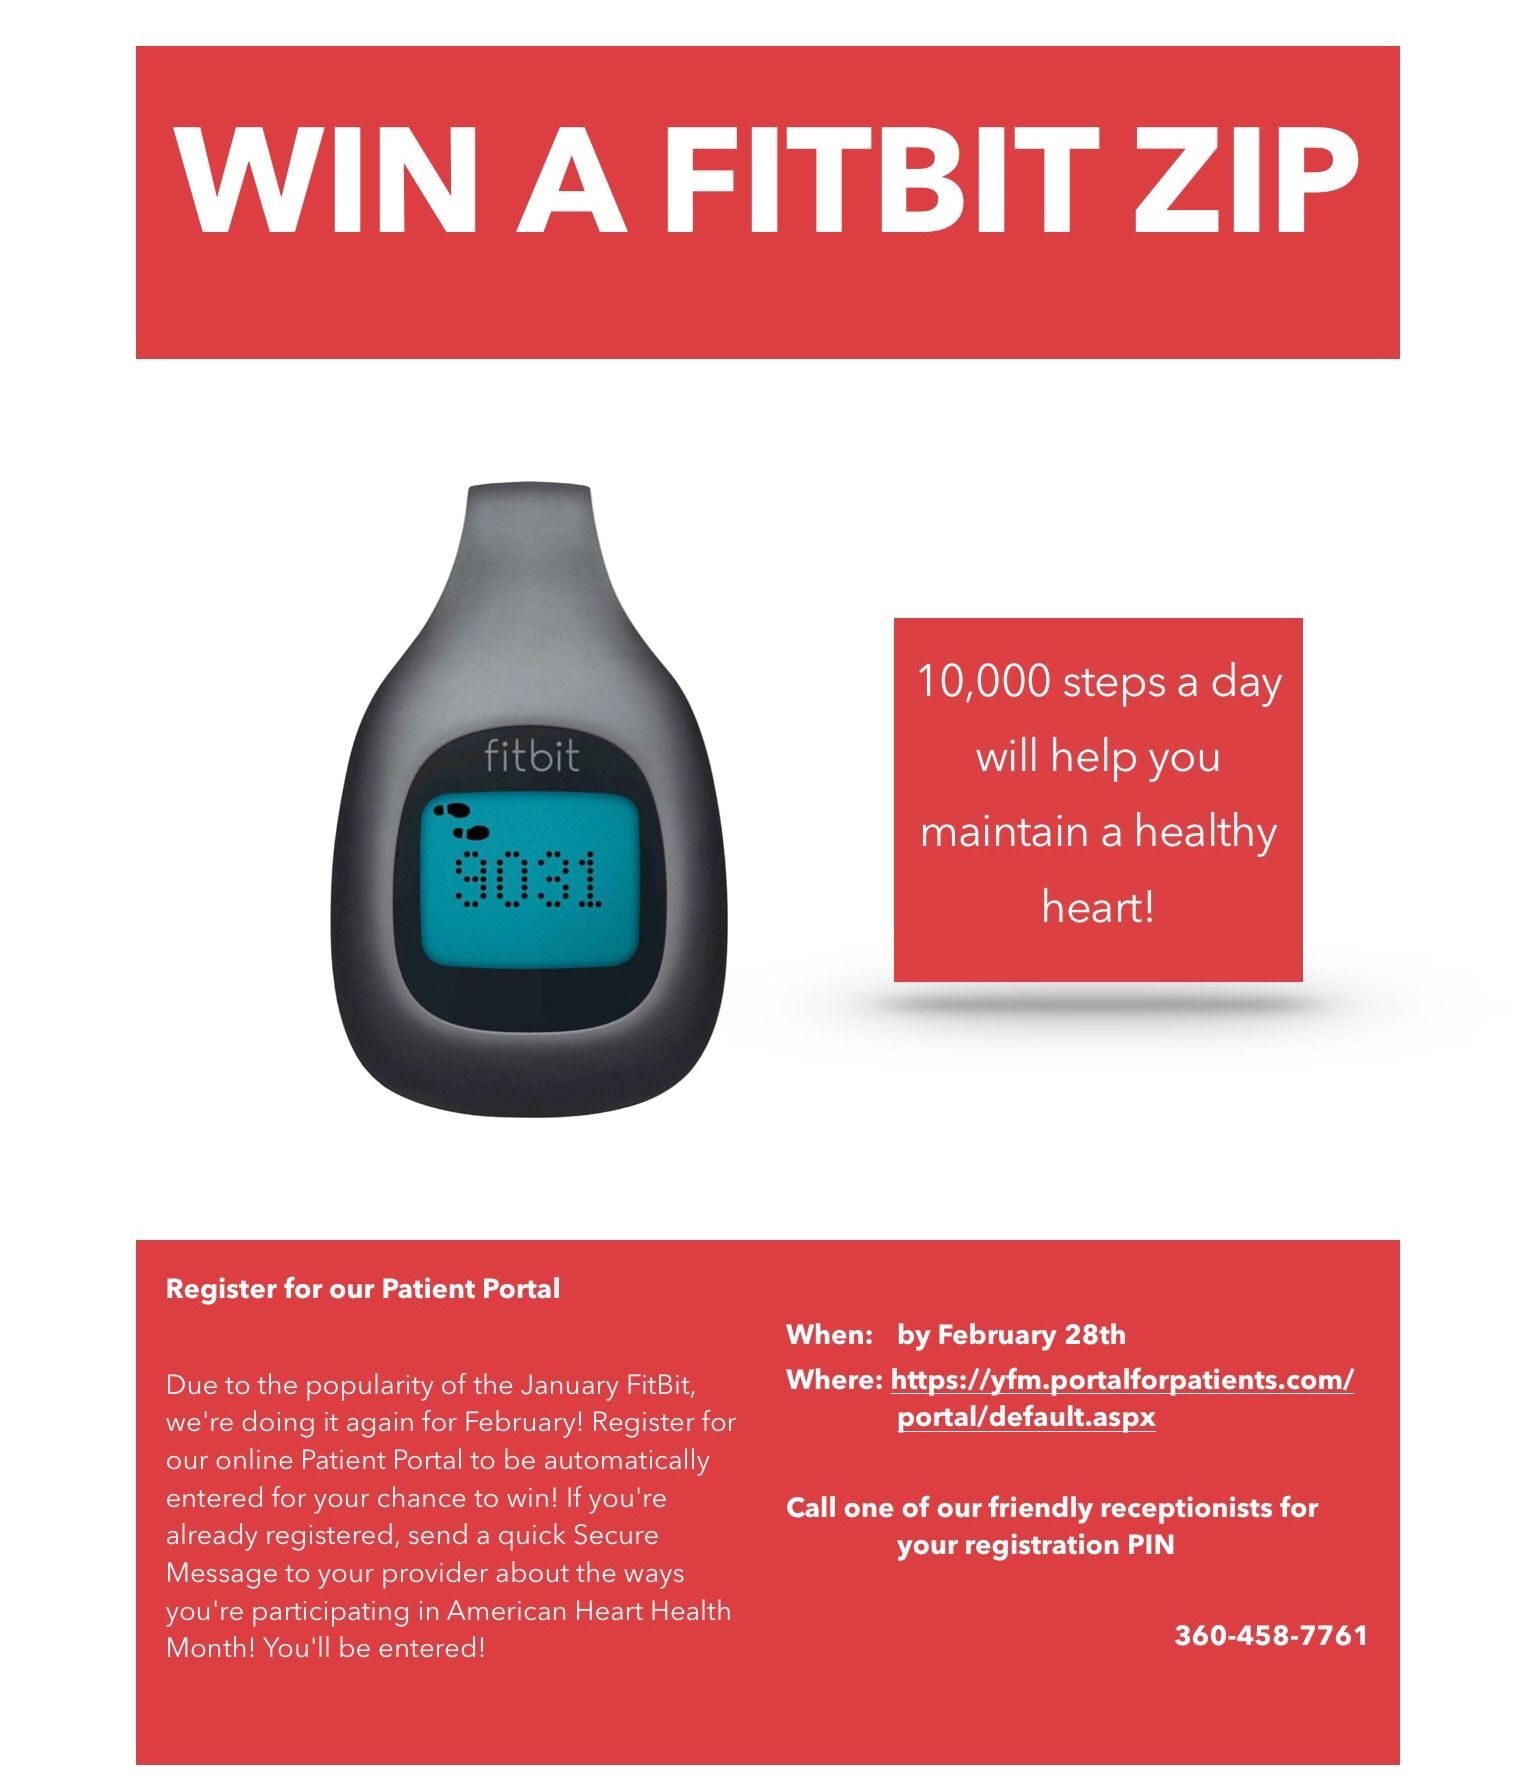 Want to win a FitBit? Sign up or use our online Patient